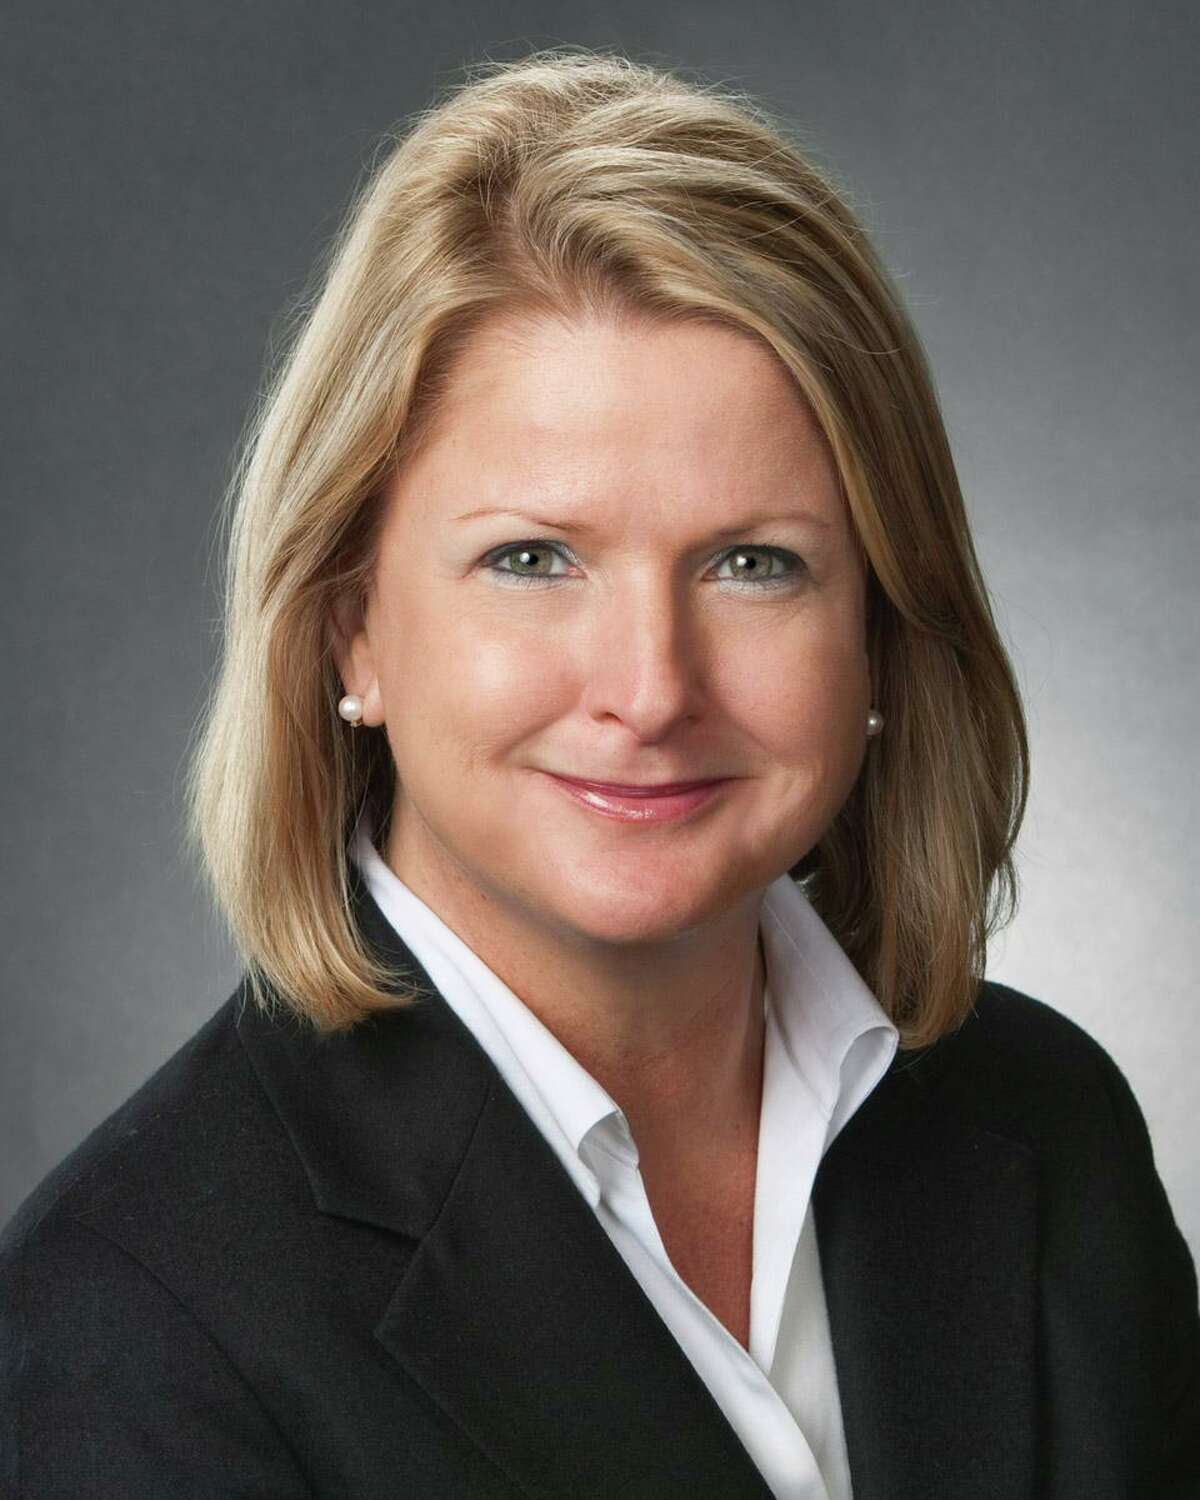 Keri Curtis Schmidt, president and CEO of the Fort Bend Chamber of Commerce is the winner of this year's Arthur A. Roberts Award for Distinguished Service.